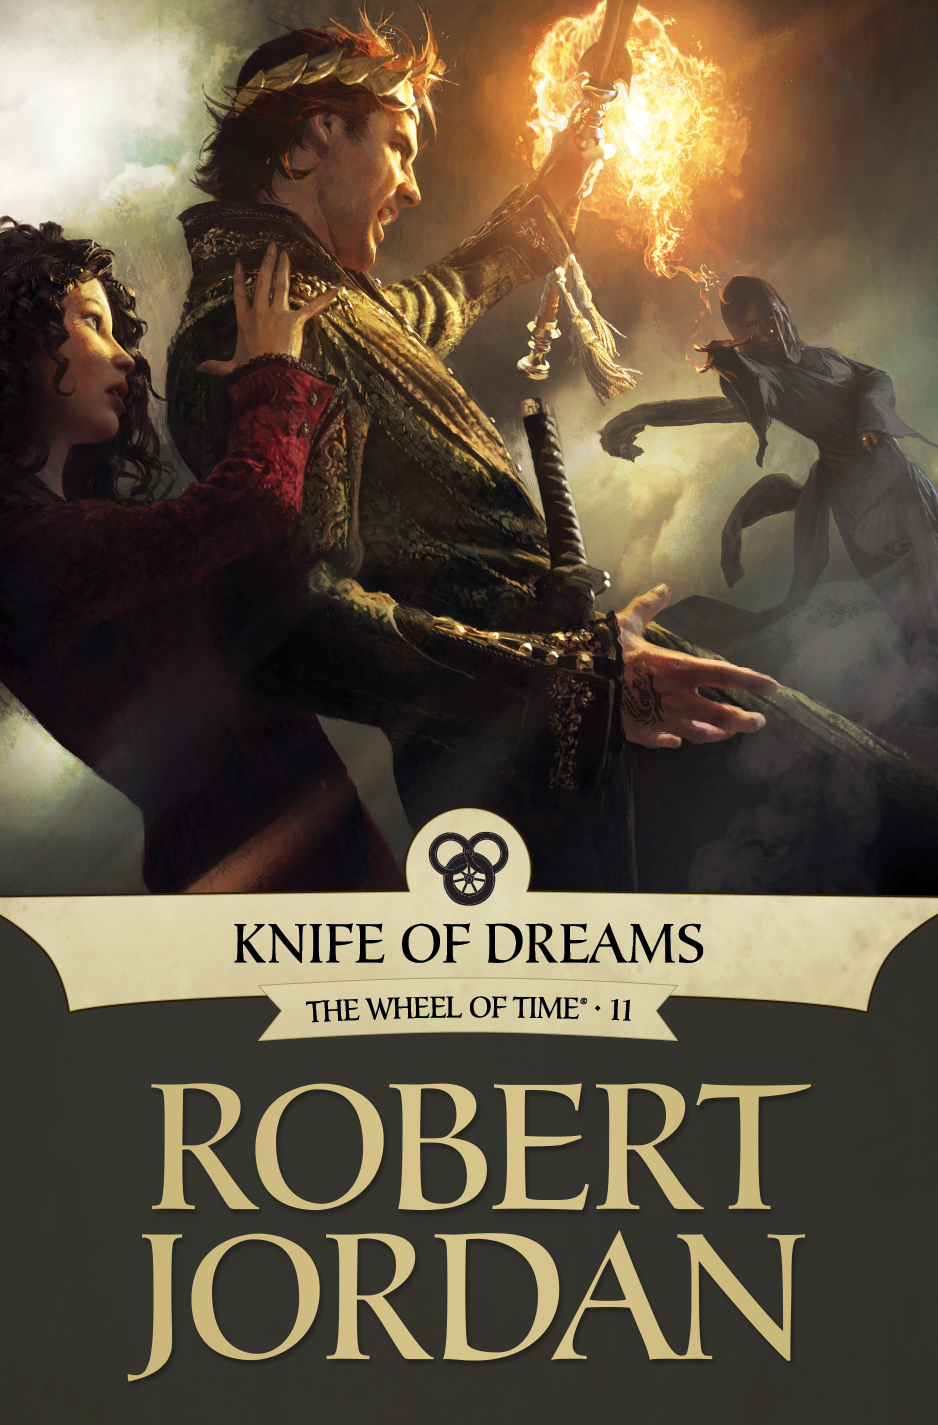 Book Cover Series Wiki ~ Knife of dreams a wheel time wiki